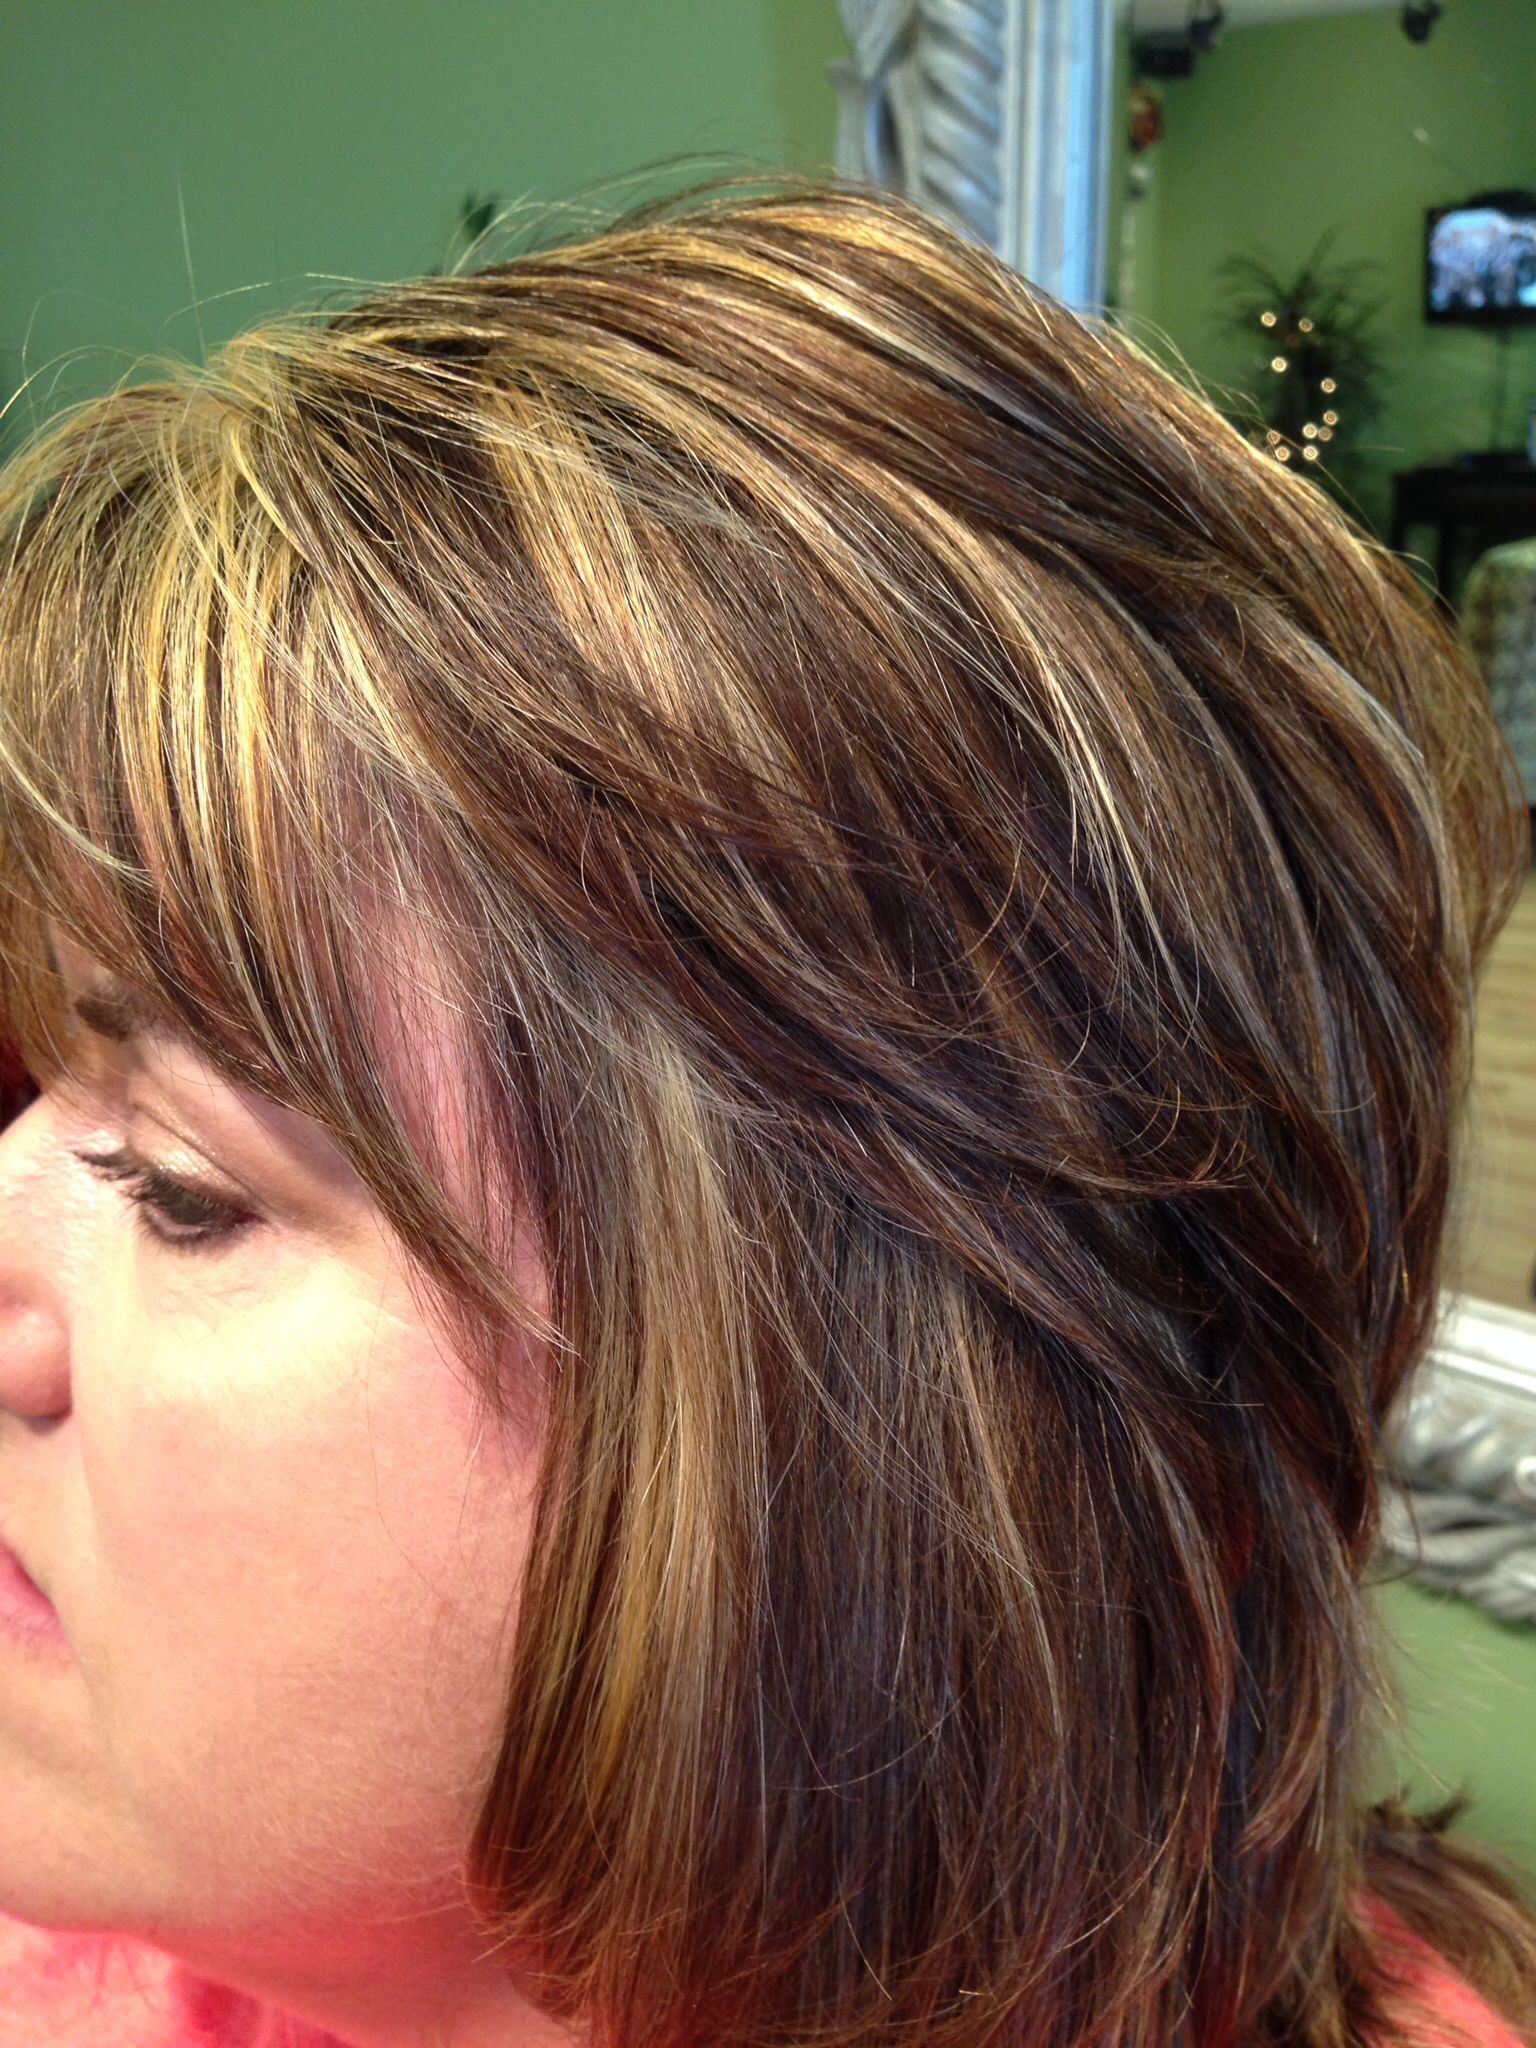 Jennifer Color Chunky foils J Michael Salon me Pinterest